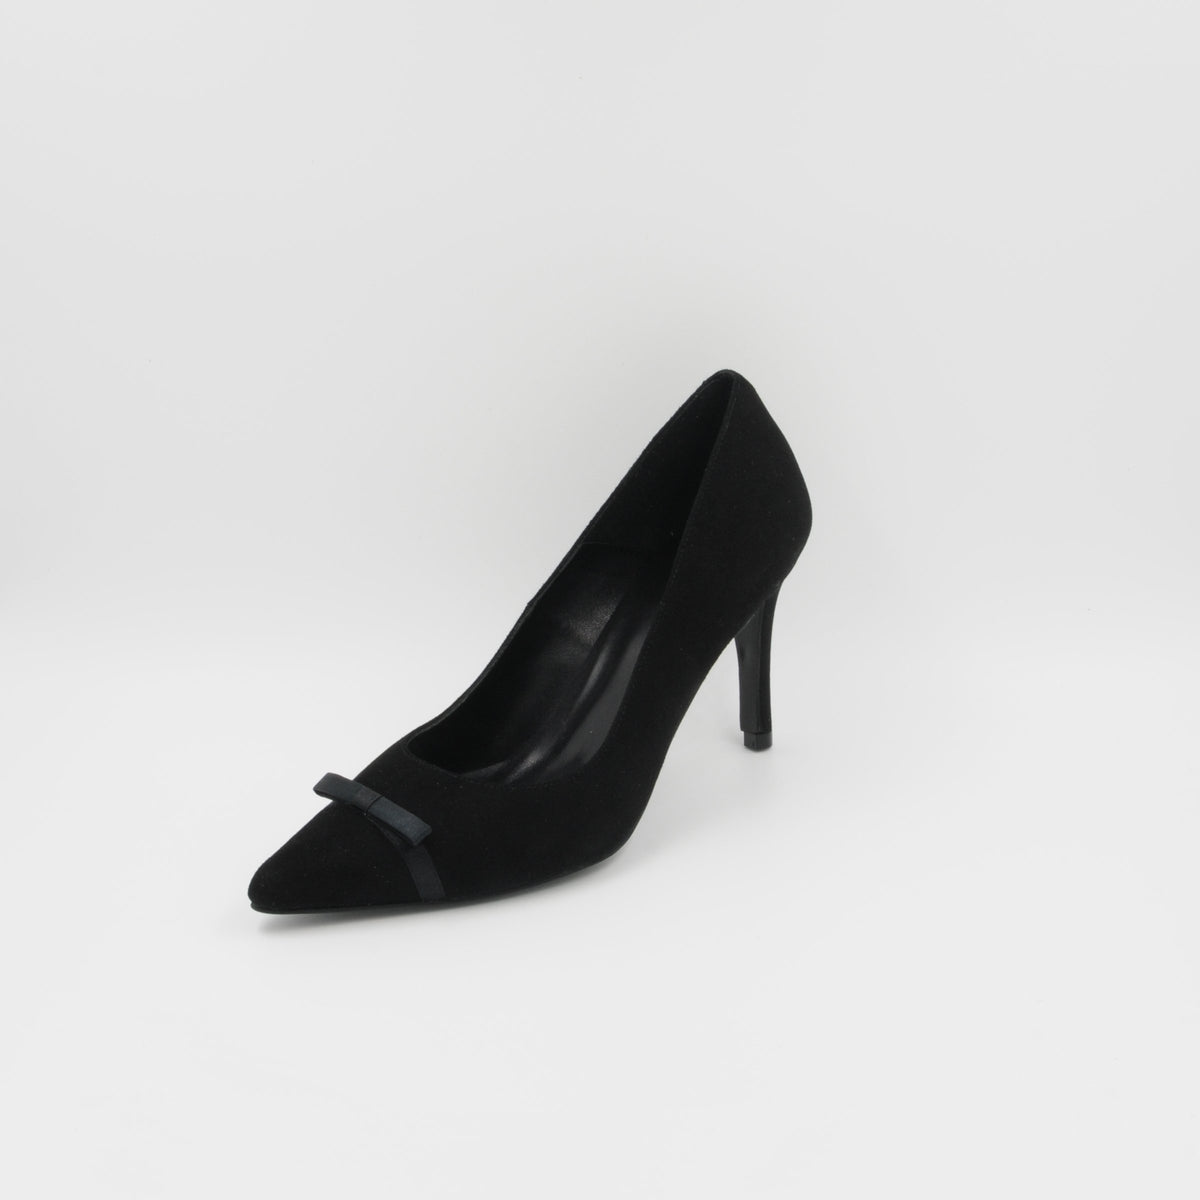 Lola Domecq Priscila In Black Hand made suede pump heels